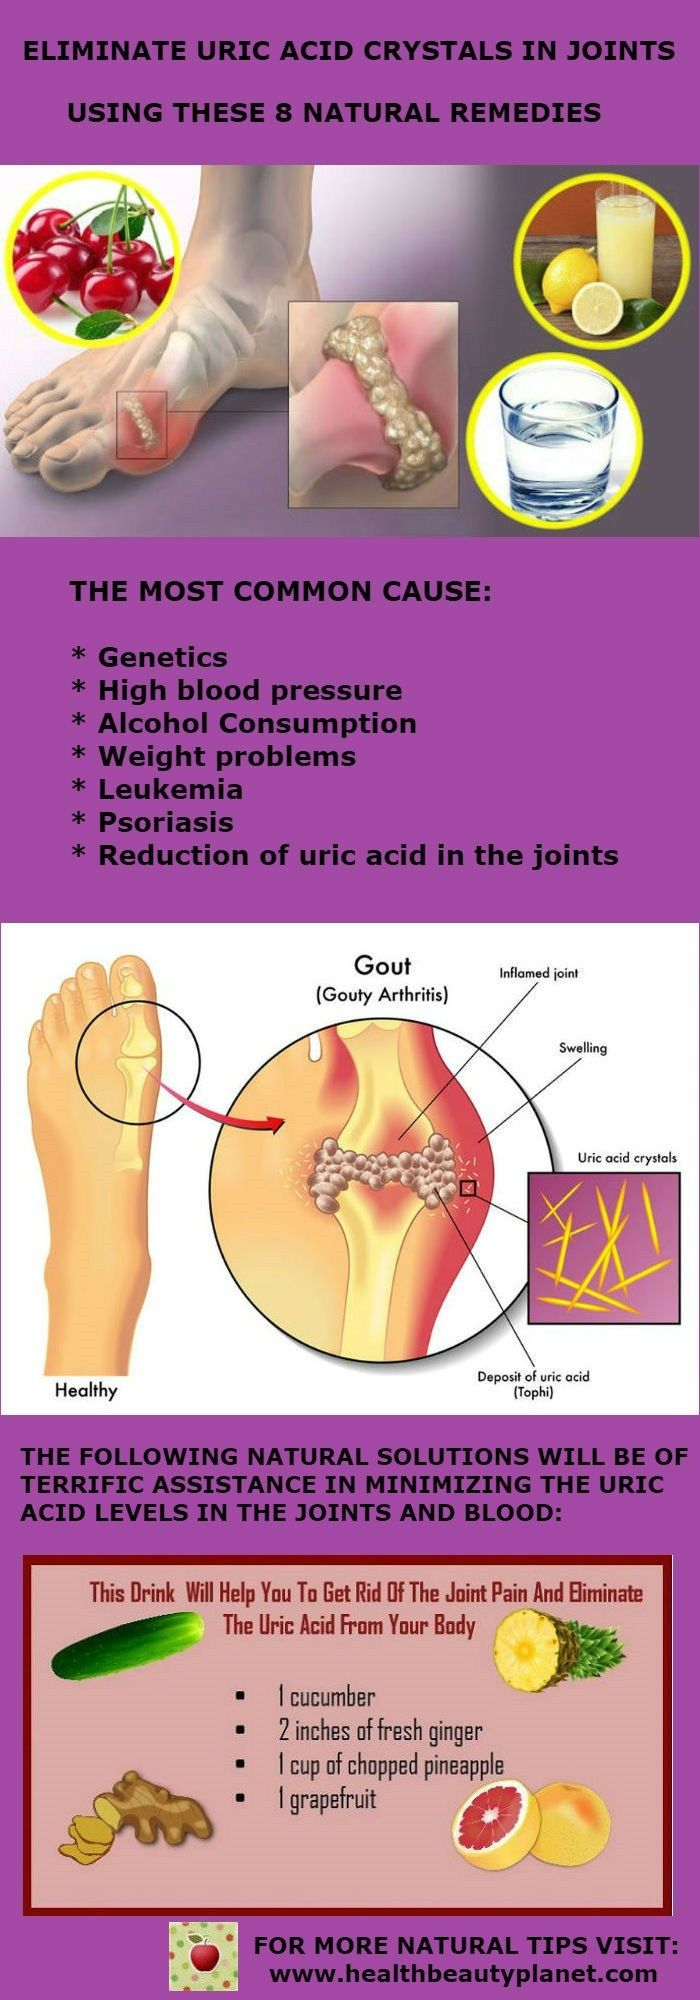 Eliminate Uric Acid Crystals In Joints Using These 8 Natural Remedies